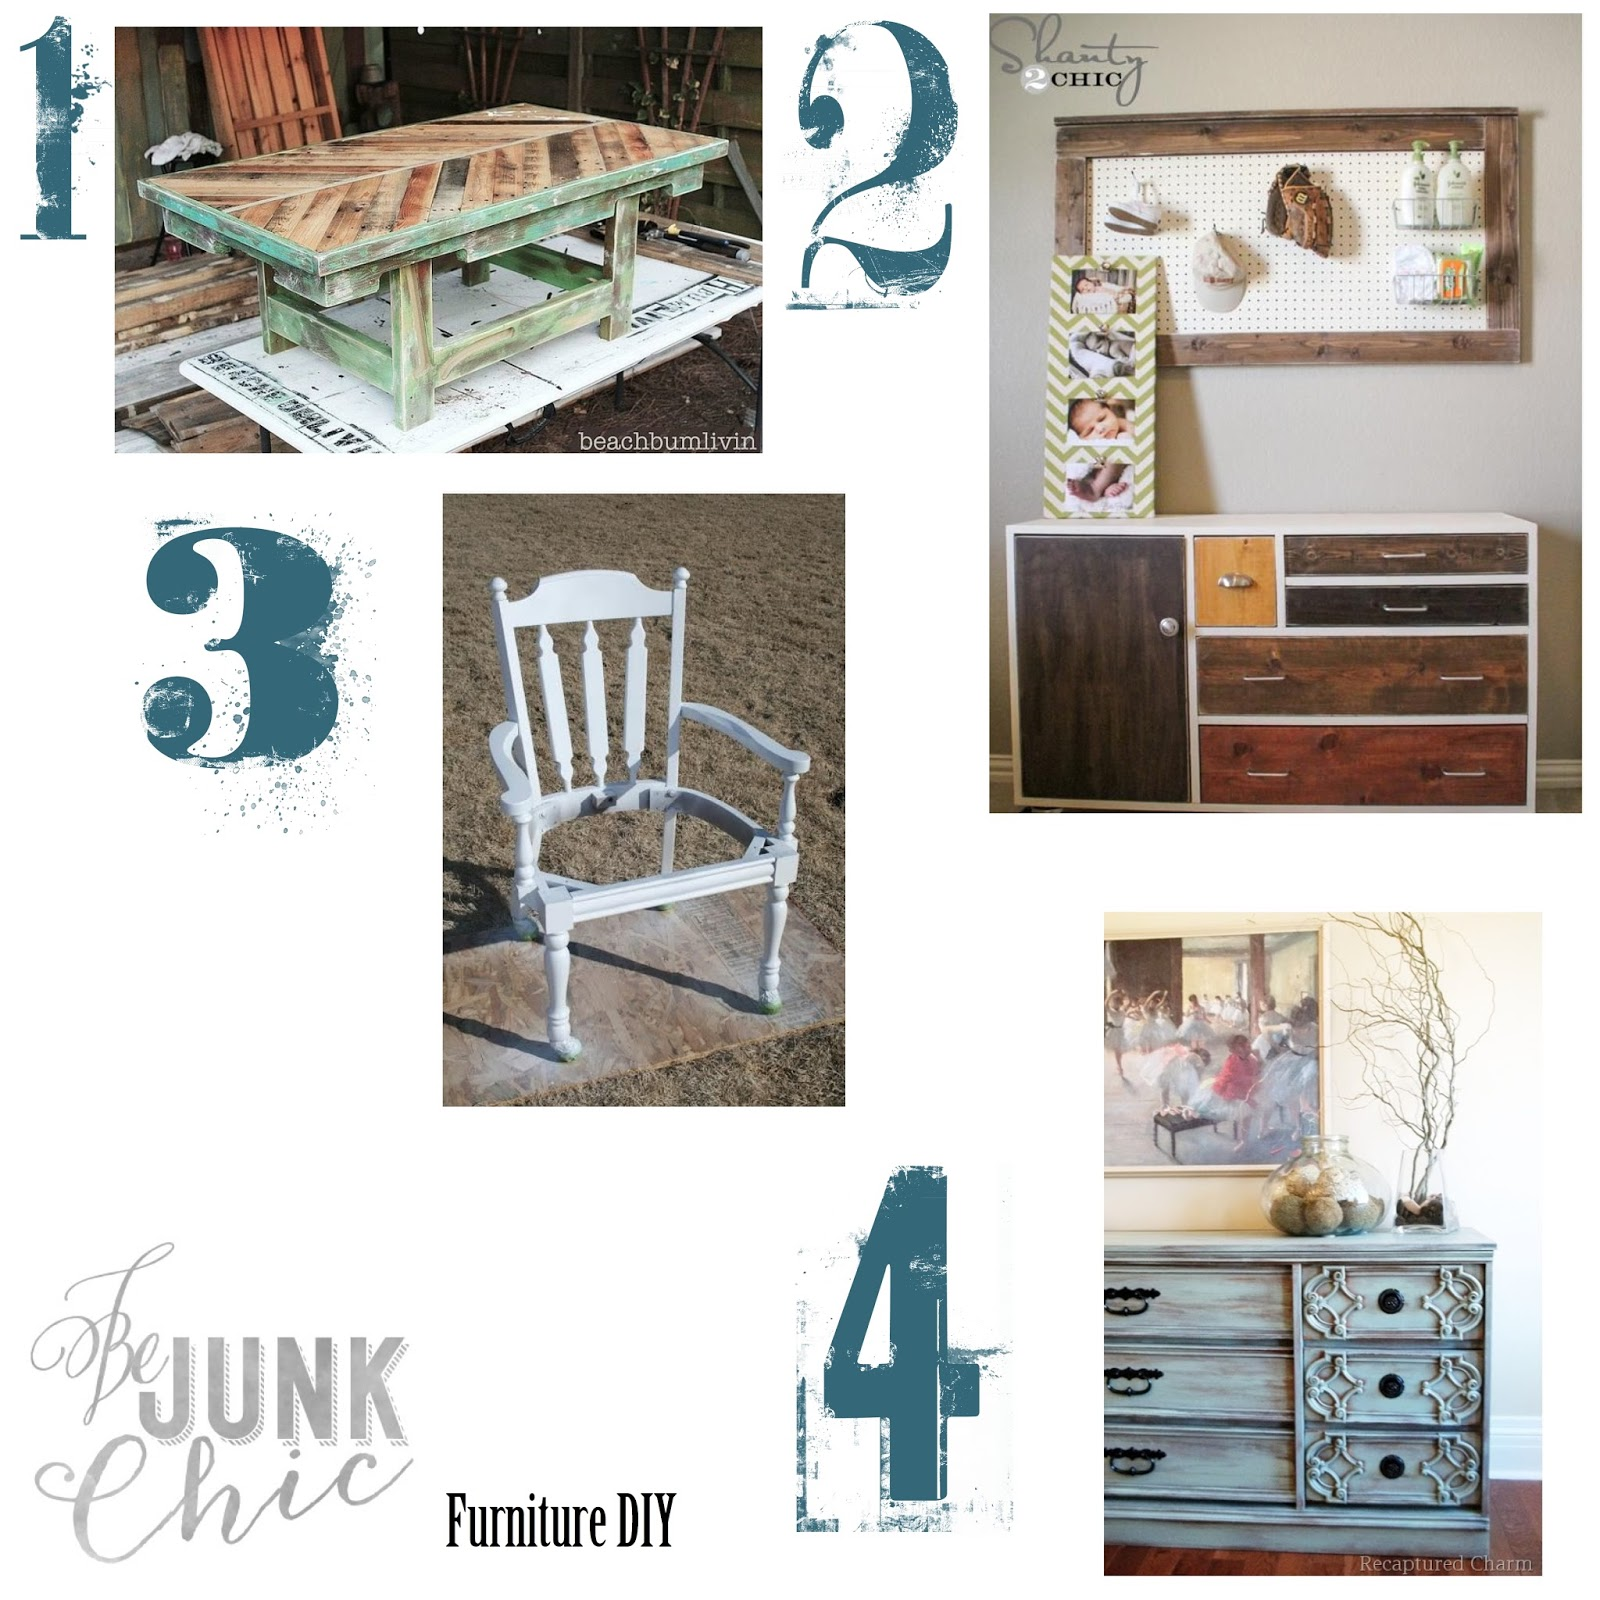 Be junk chic four diy furniture projects for Skilled craft worker makes furniture art etc